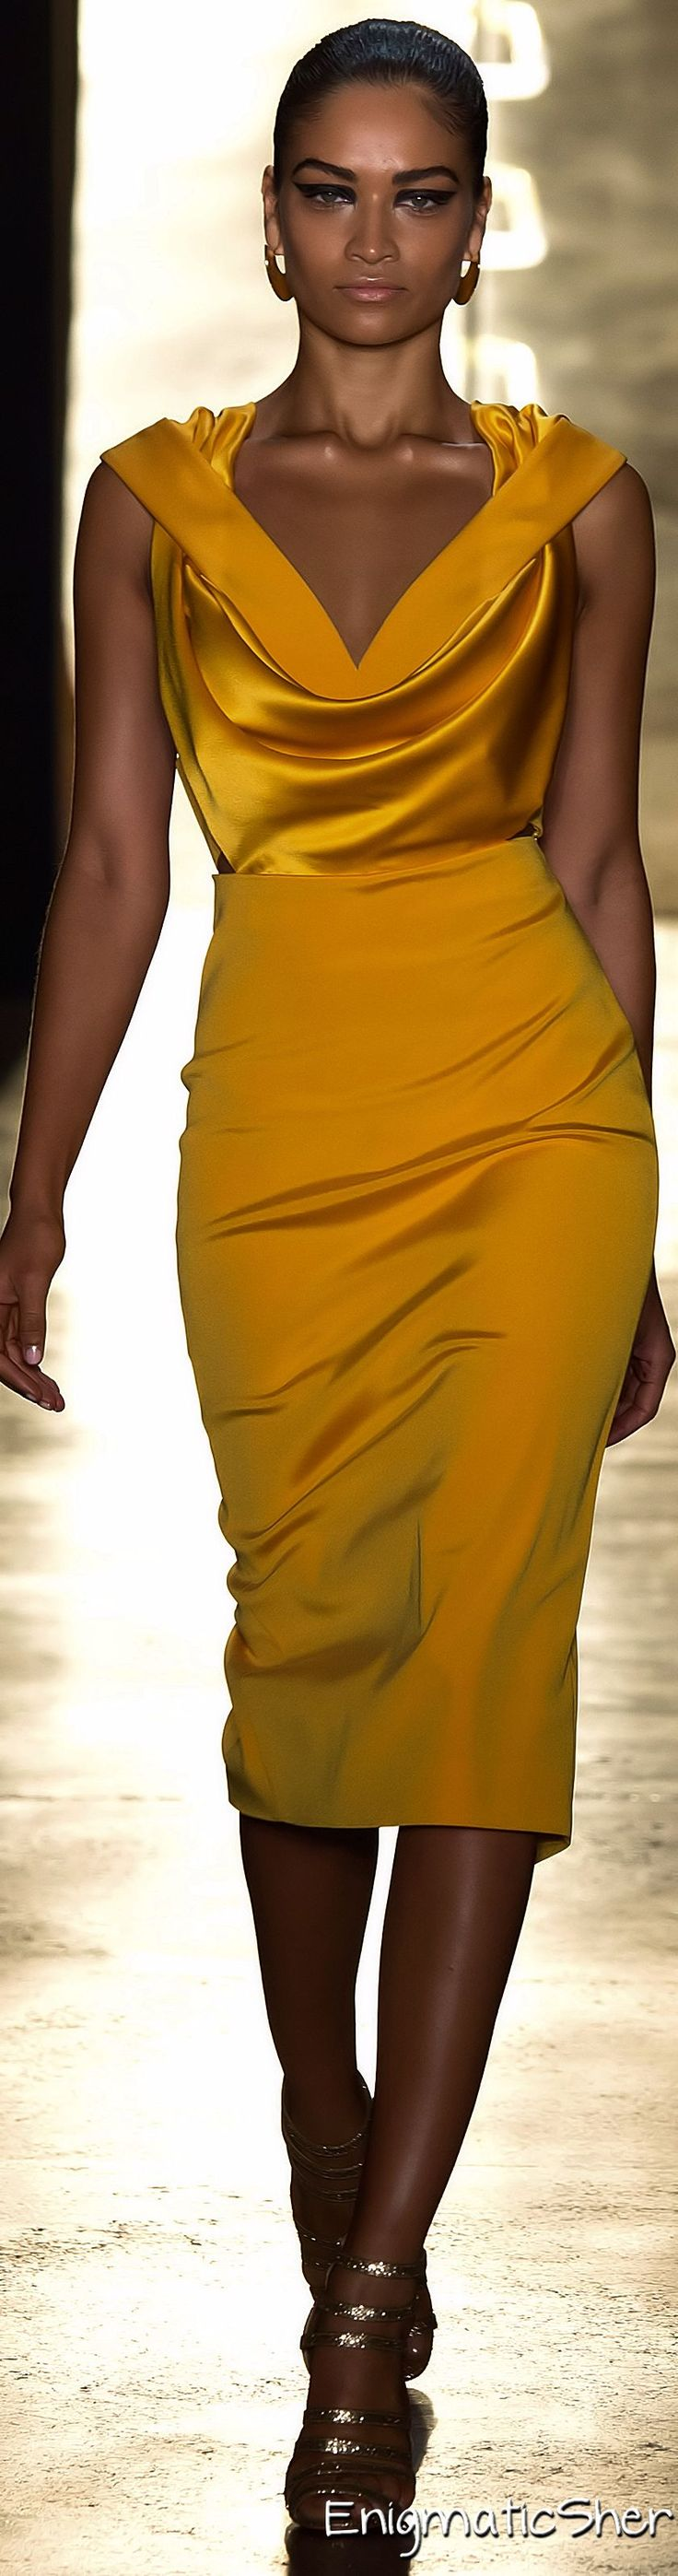 """Cushnie et Ochs Spring Summer 2015 Ready-To-Wear """"And the LORD said to Moses, """"Go to the people and consecrate them today and tomorrow. Have them wash their clothes."""" Exodus 19:10                                                                                                                                                     More"""